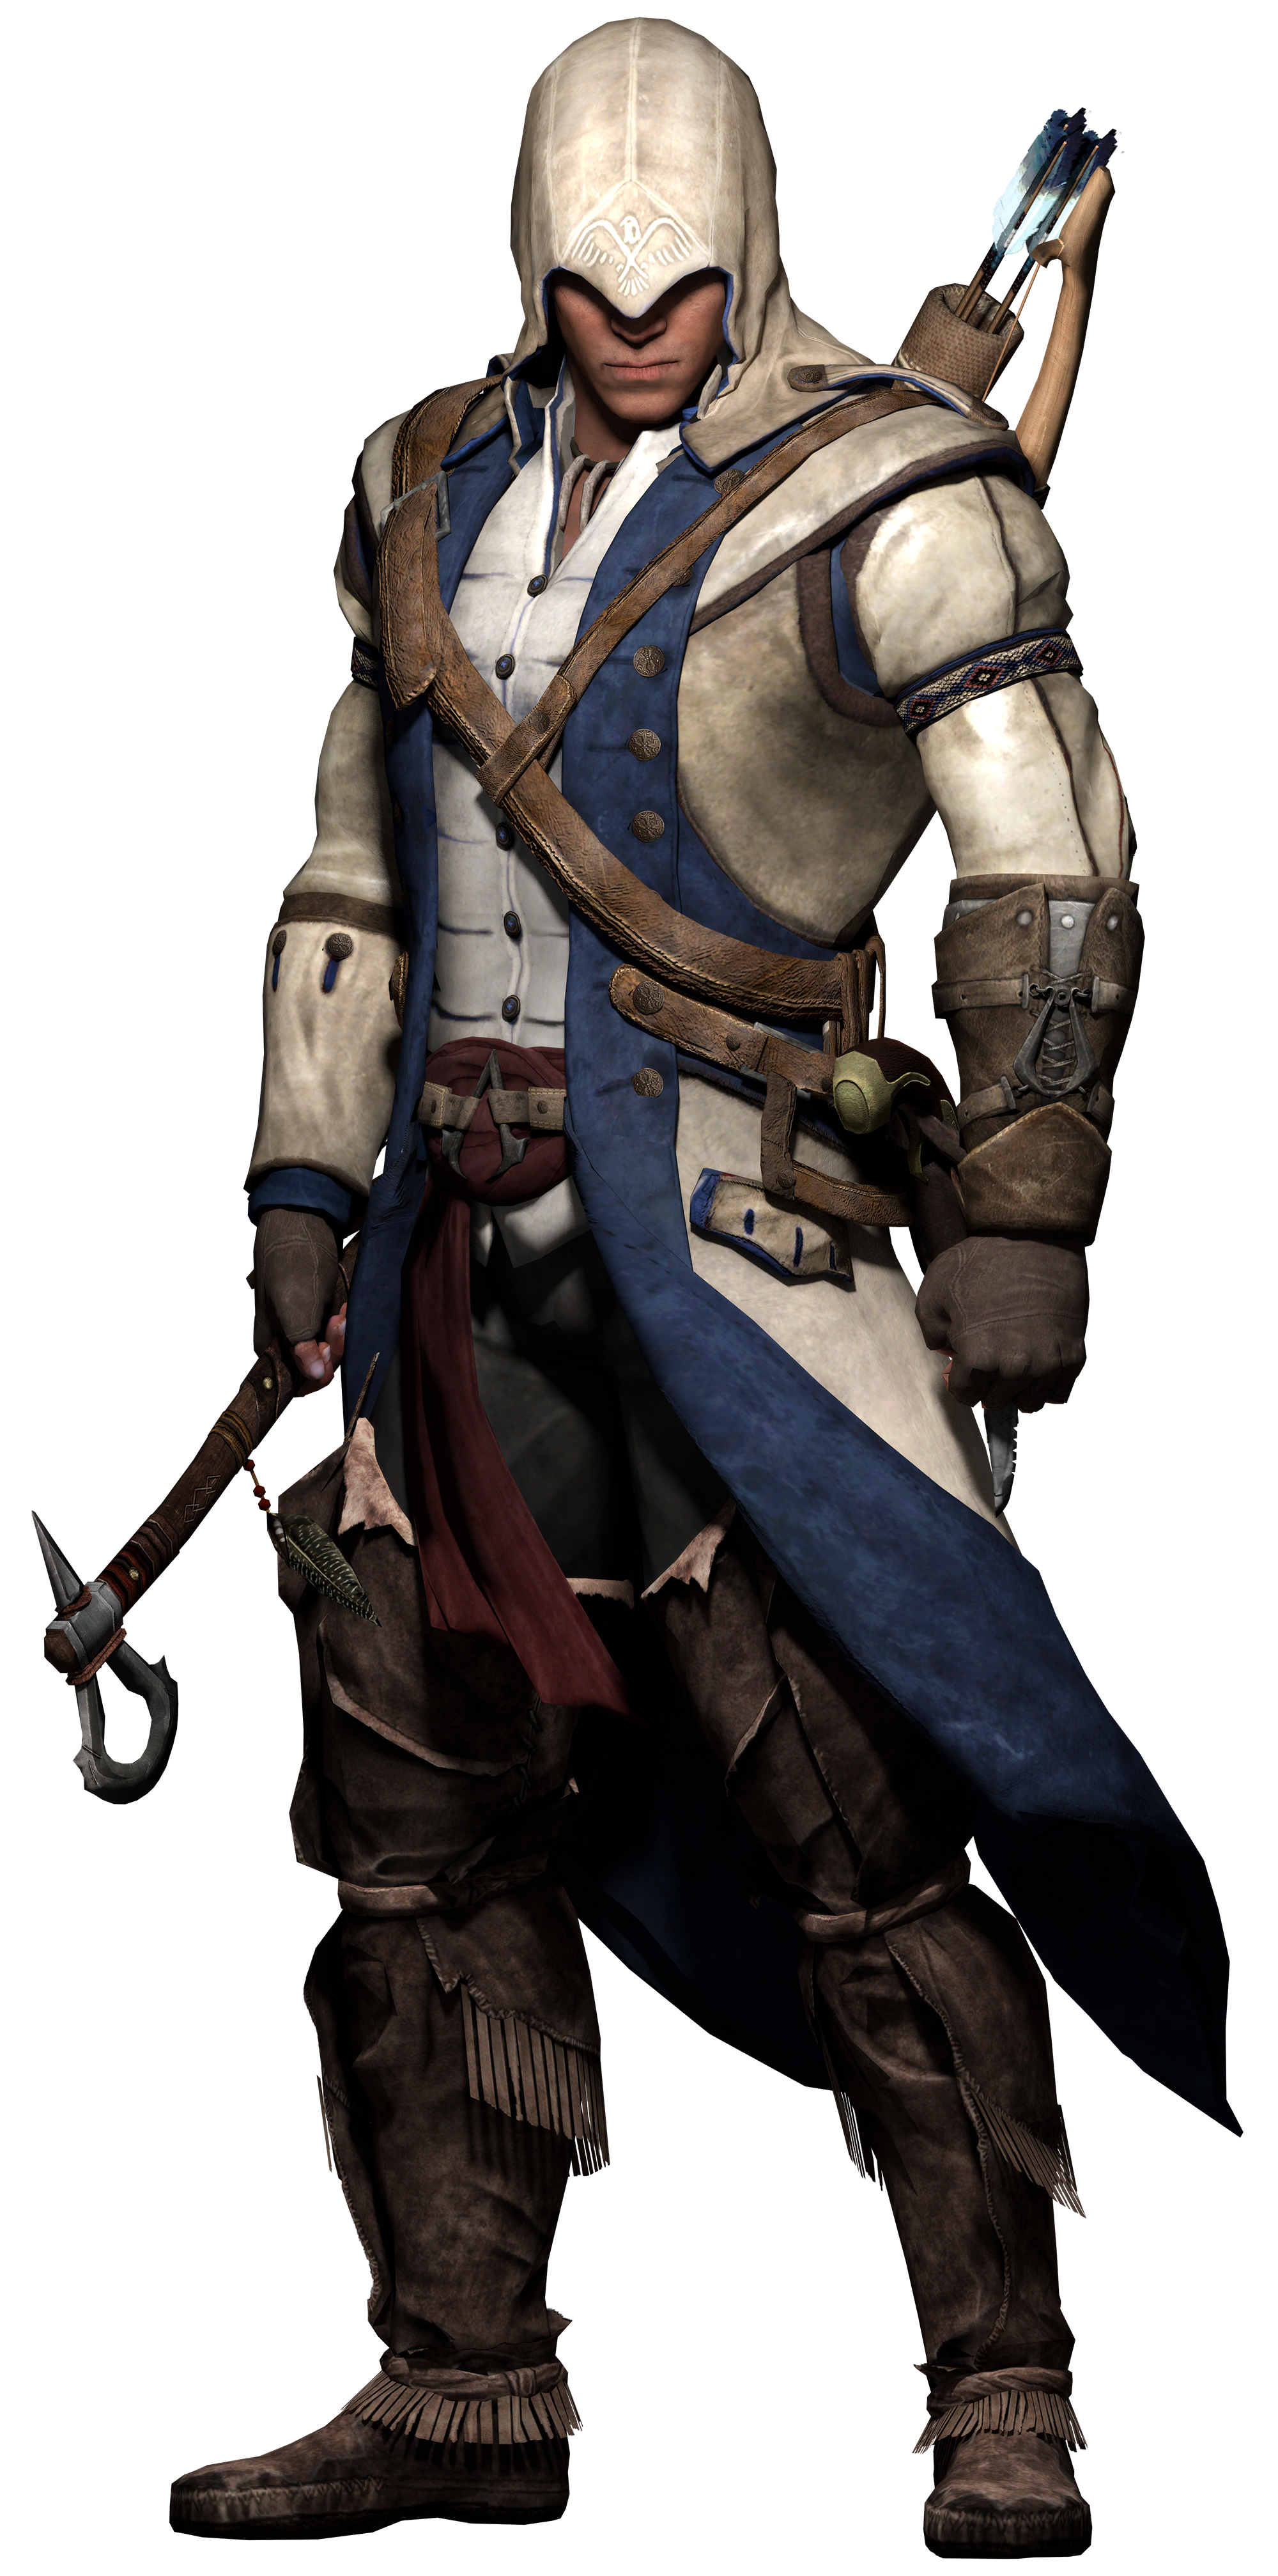 http://images3.wikia.nocookie.net/__cb20121031233916/assassinscreed/images/4/4b/AC3_Connor_Render.png